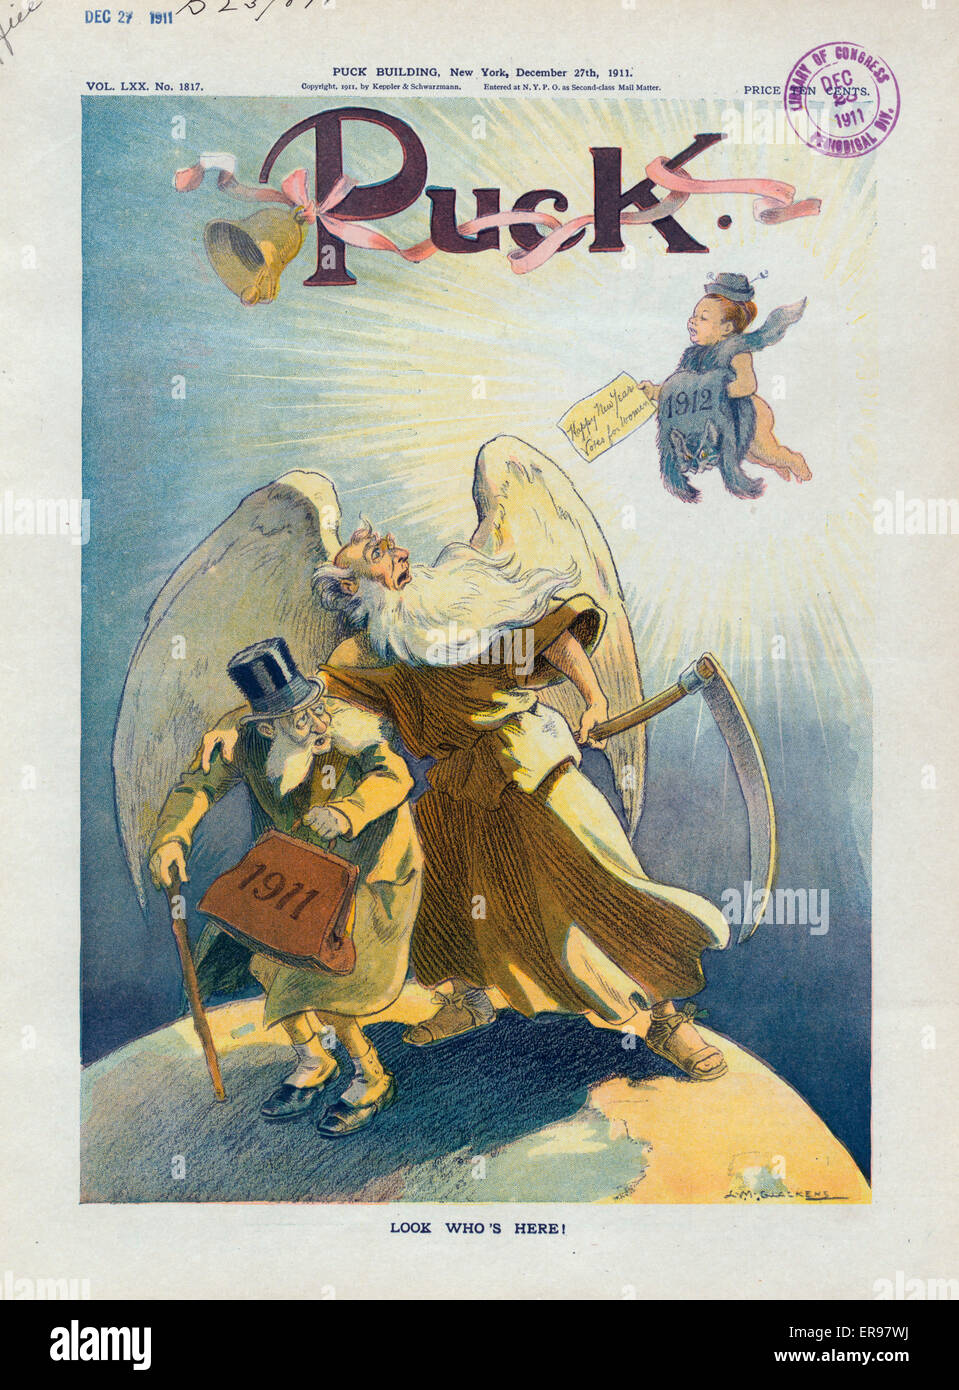 Look who's here!. Illustration shows Father Time as he is ushering out an old man labeled 1911; he is surprised - Stock Image